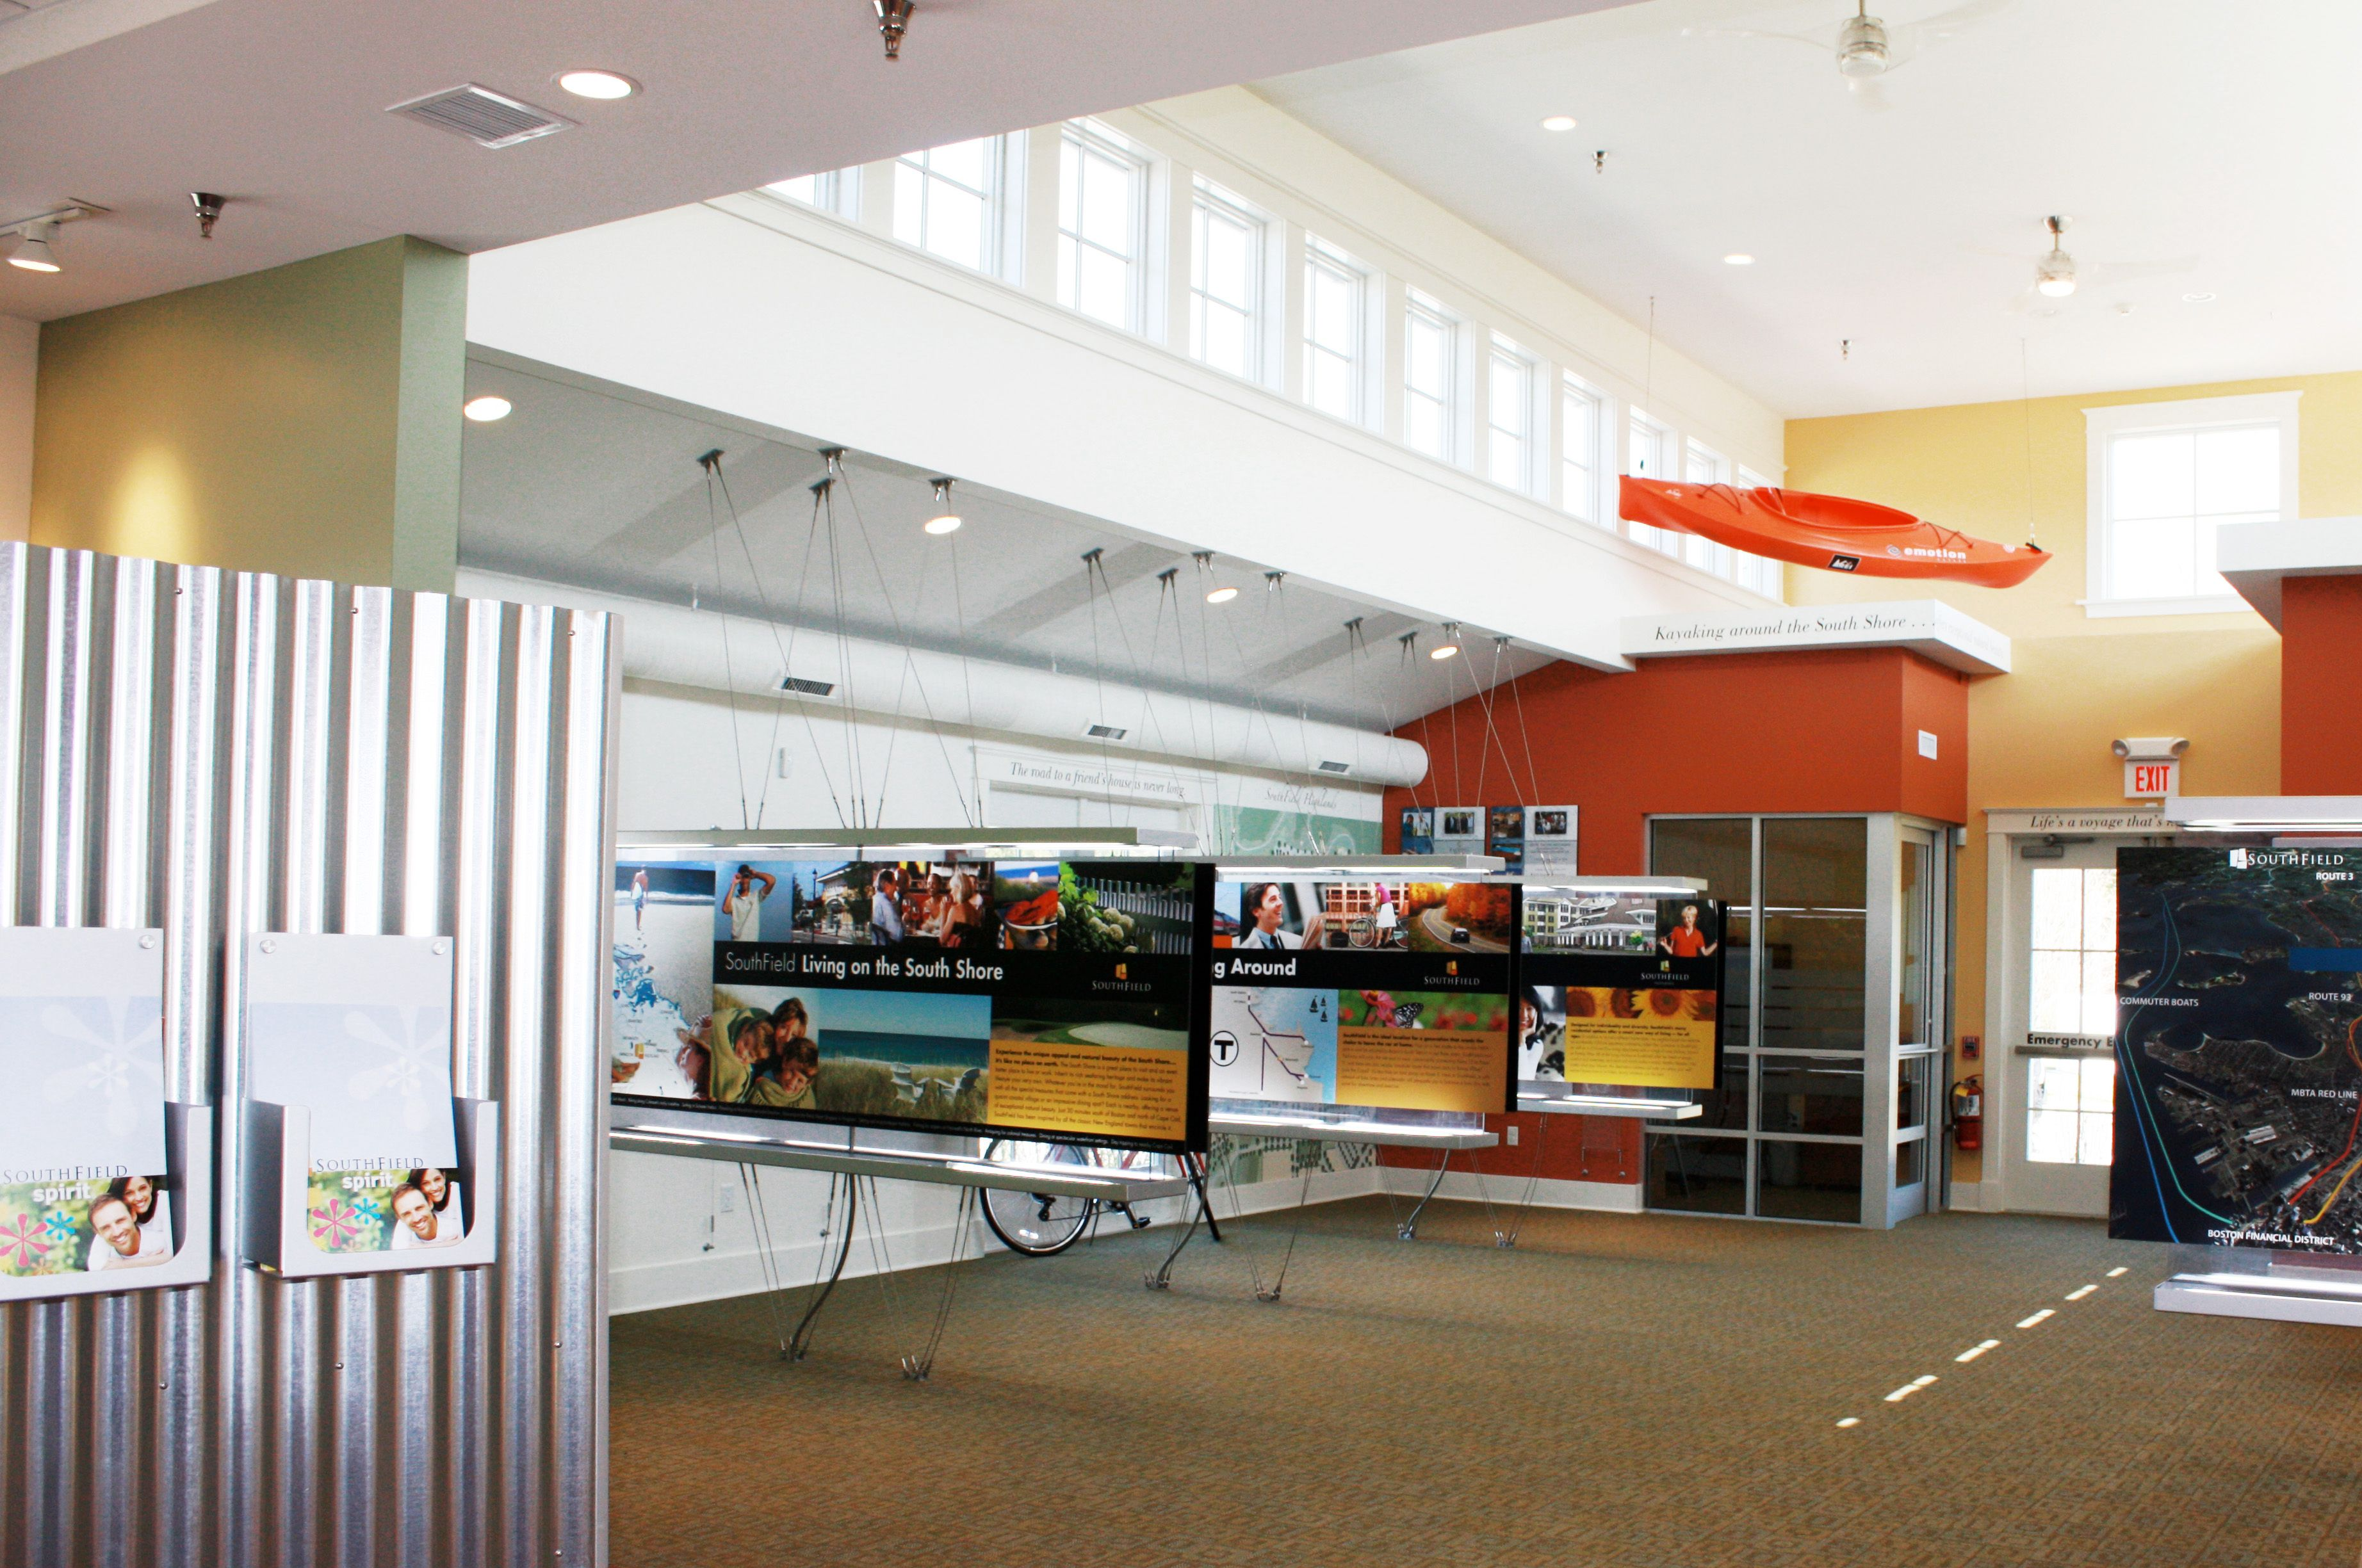 SouthfieldSalesMarketingCenter-Weymouth-Interior2.jpg